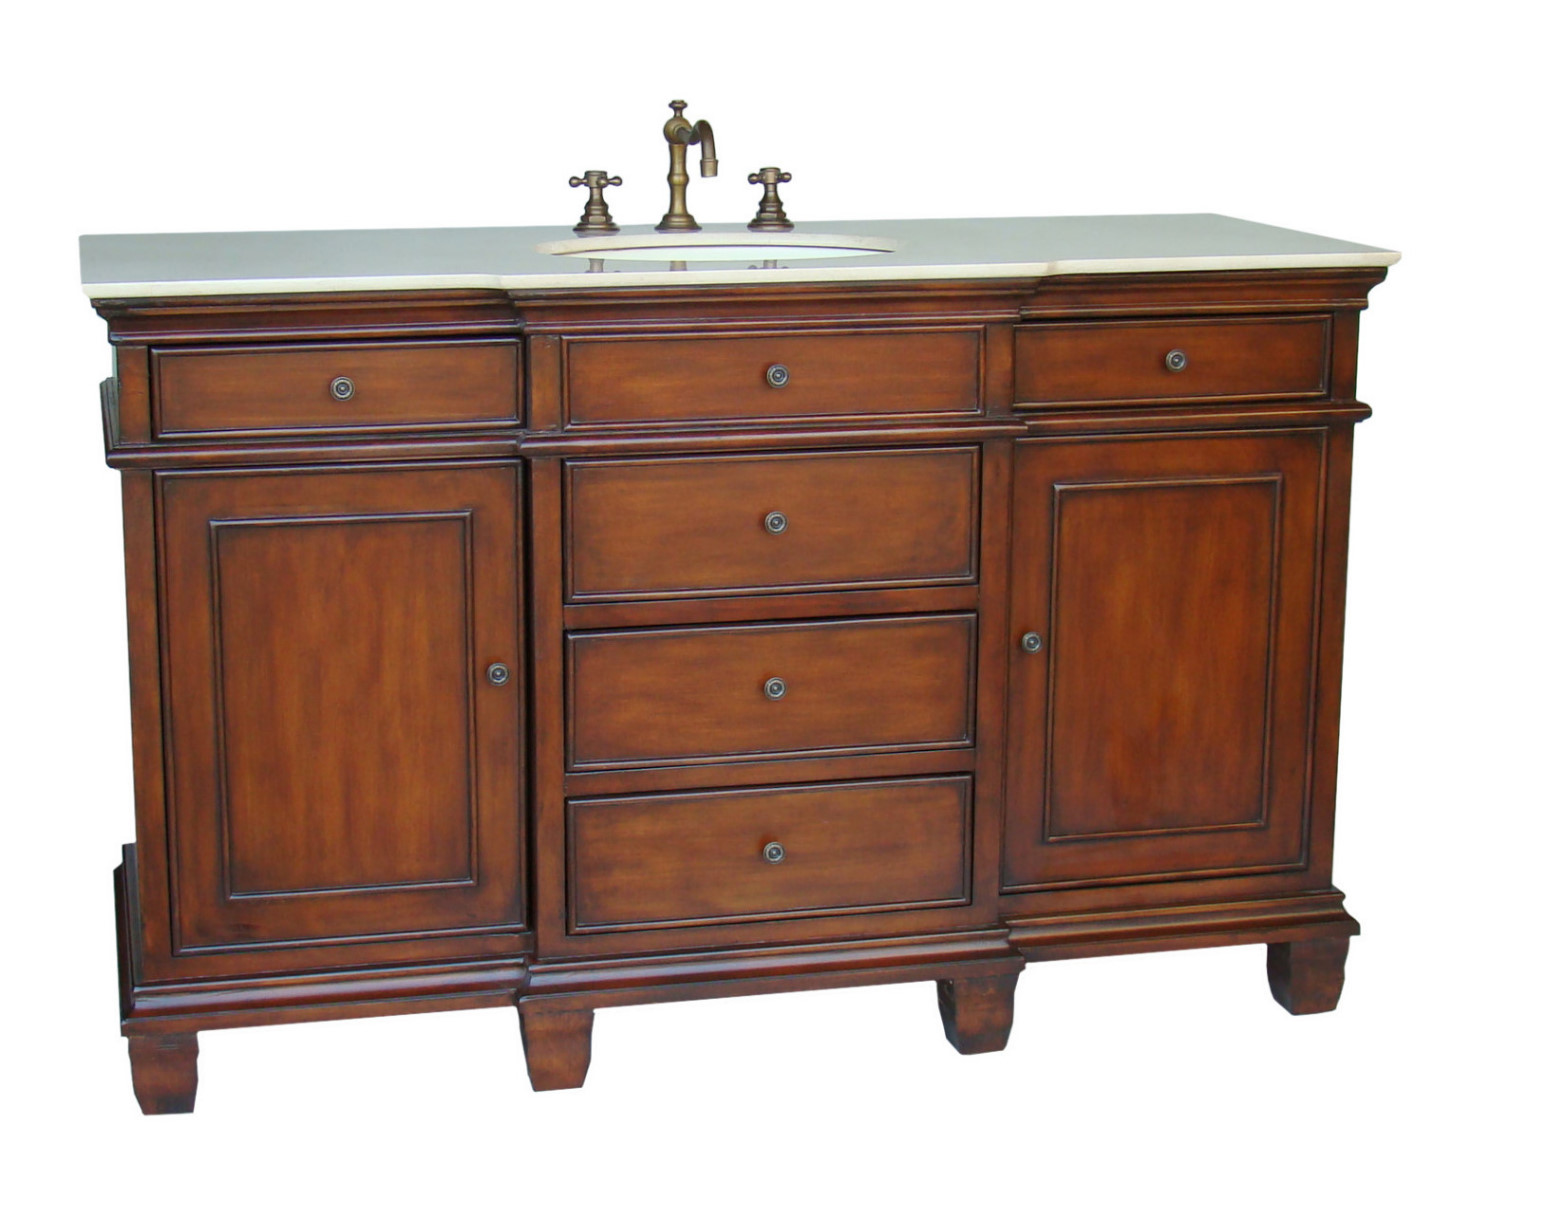 56 inch dunsmore vanity single sink vanity chestnut finish vanity 22 inch wide bathroom vanity with sink